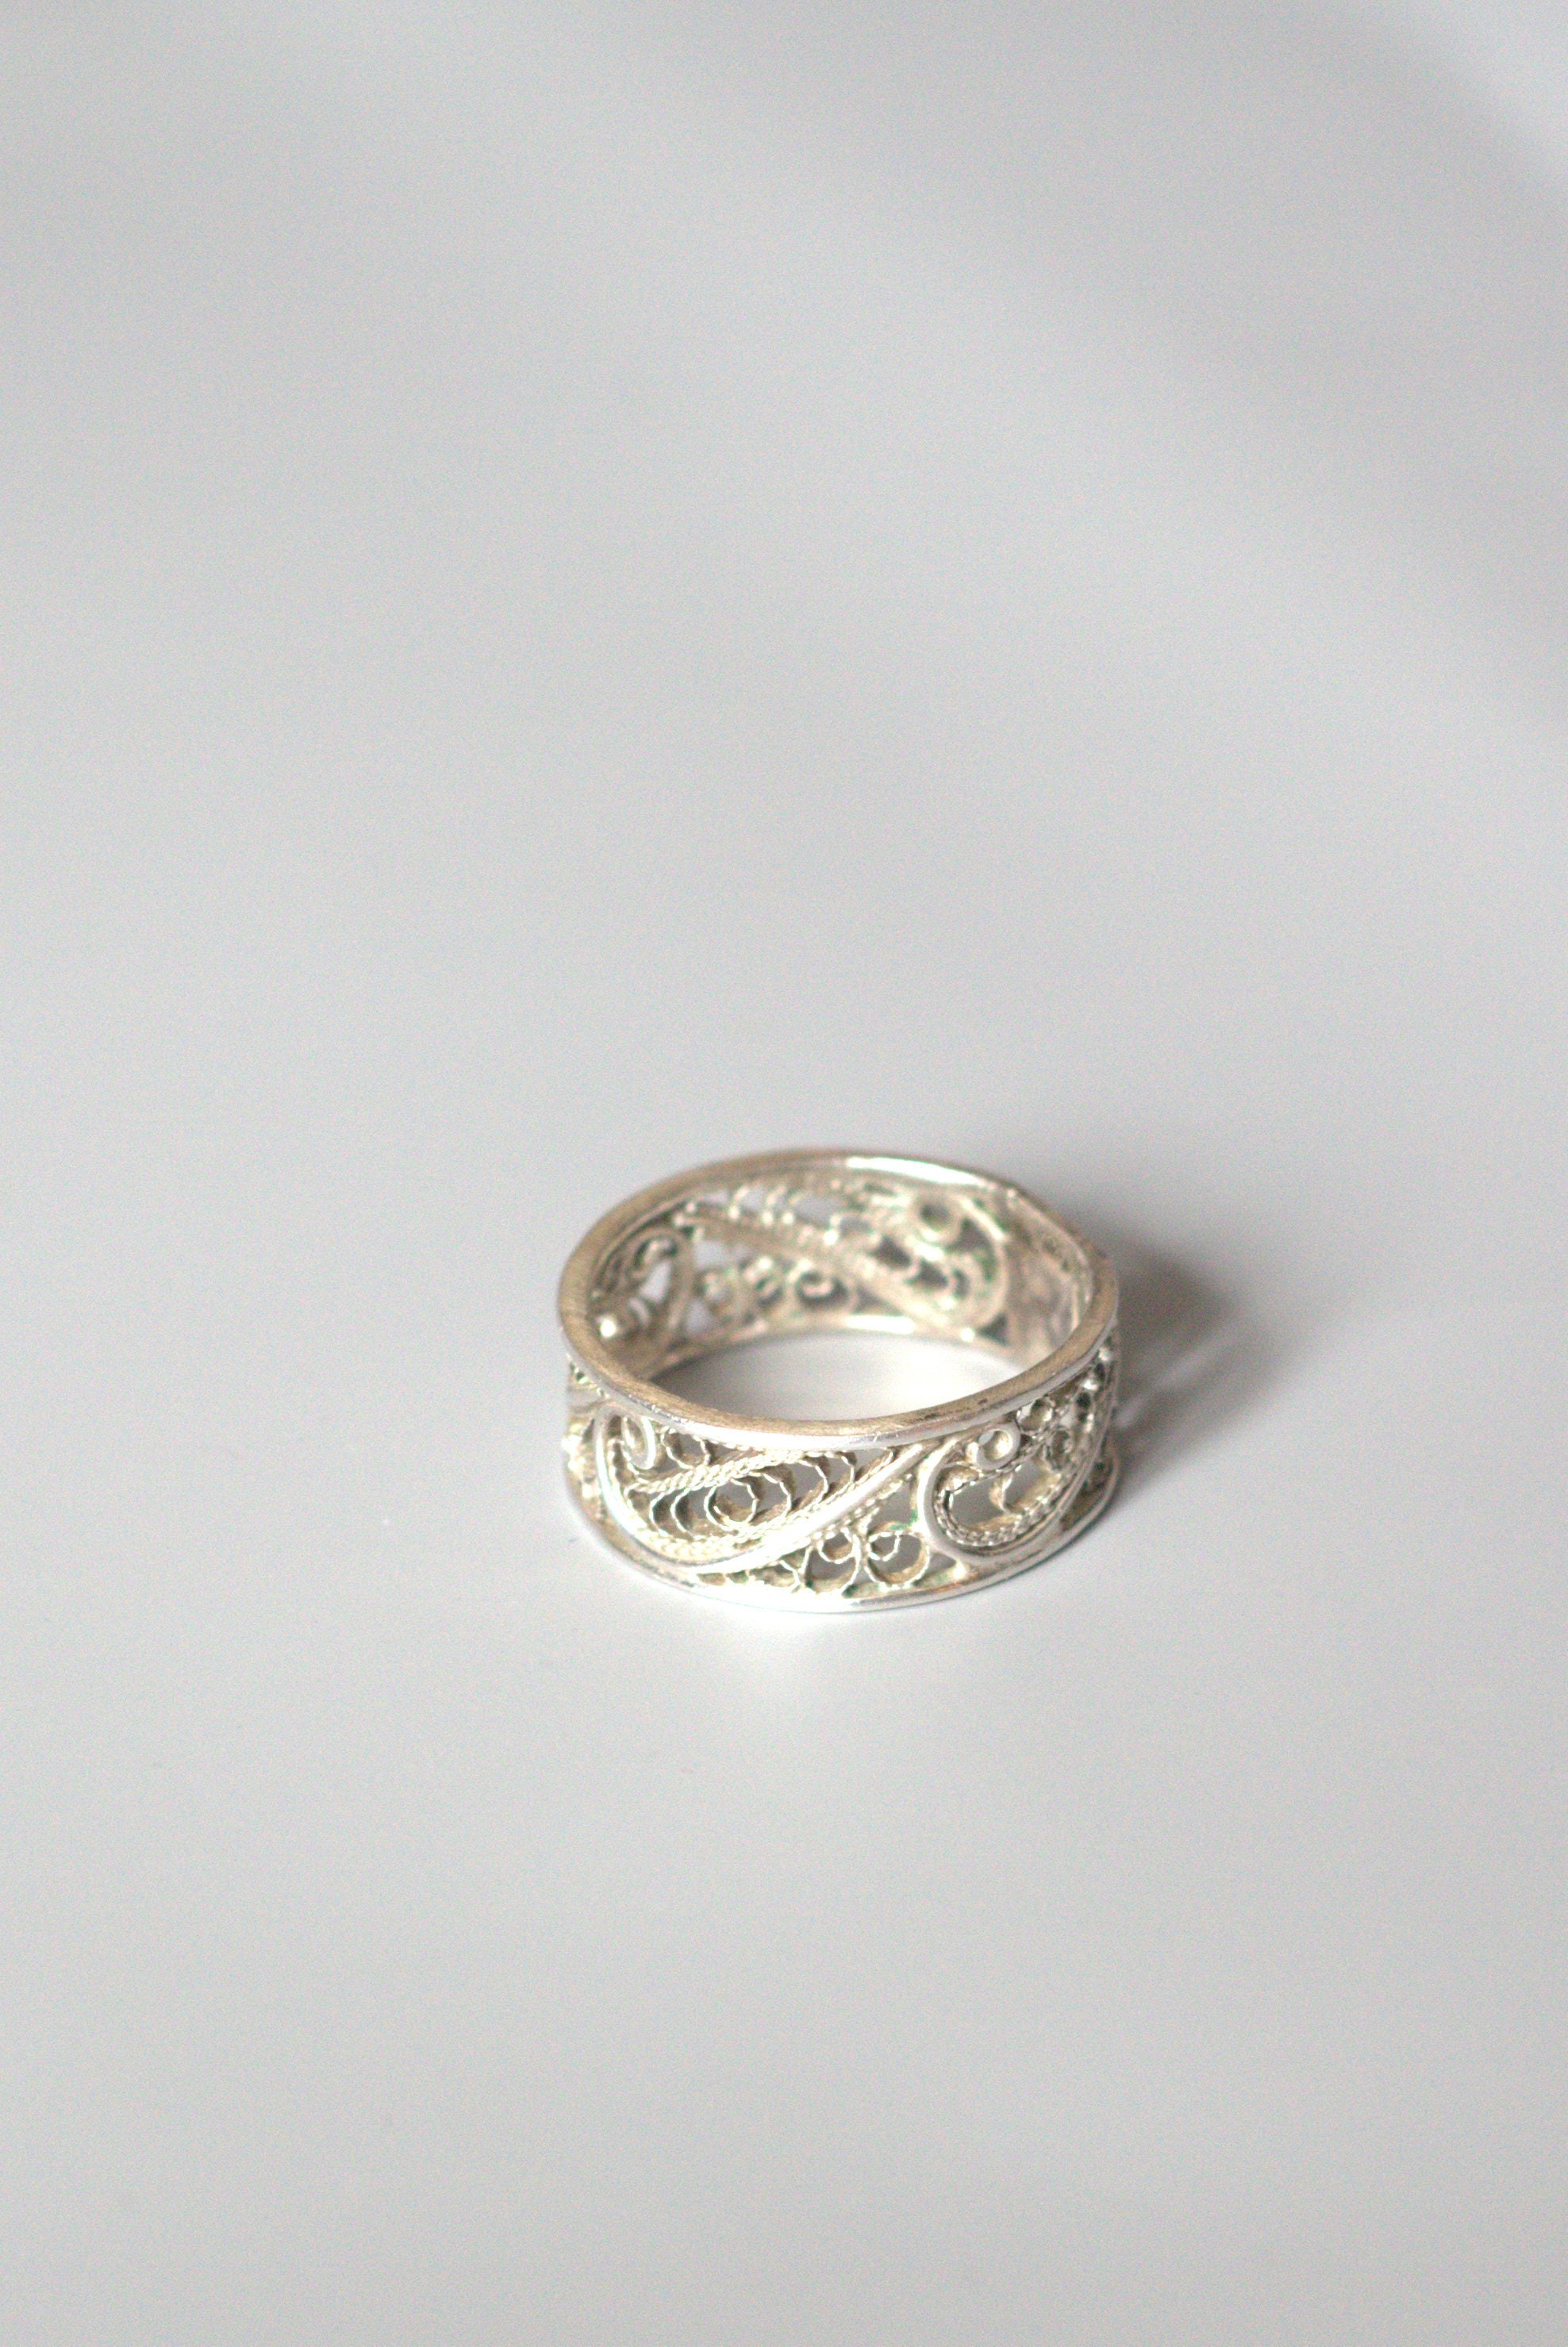 filigree oak bands buy leaf to custom ring made a hand silver crazyassjewelry eternity by